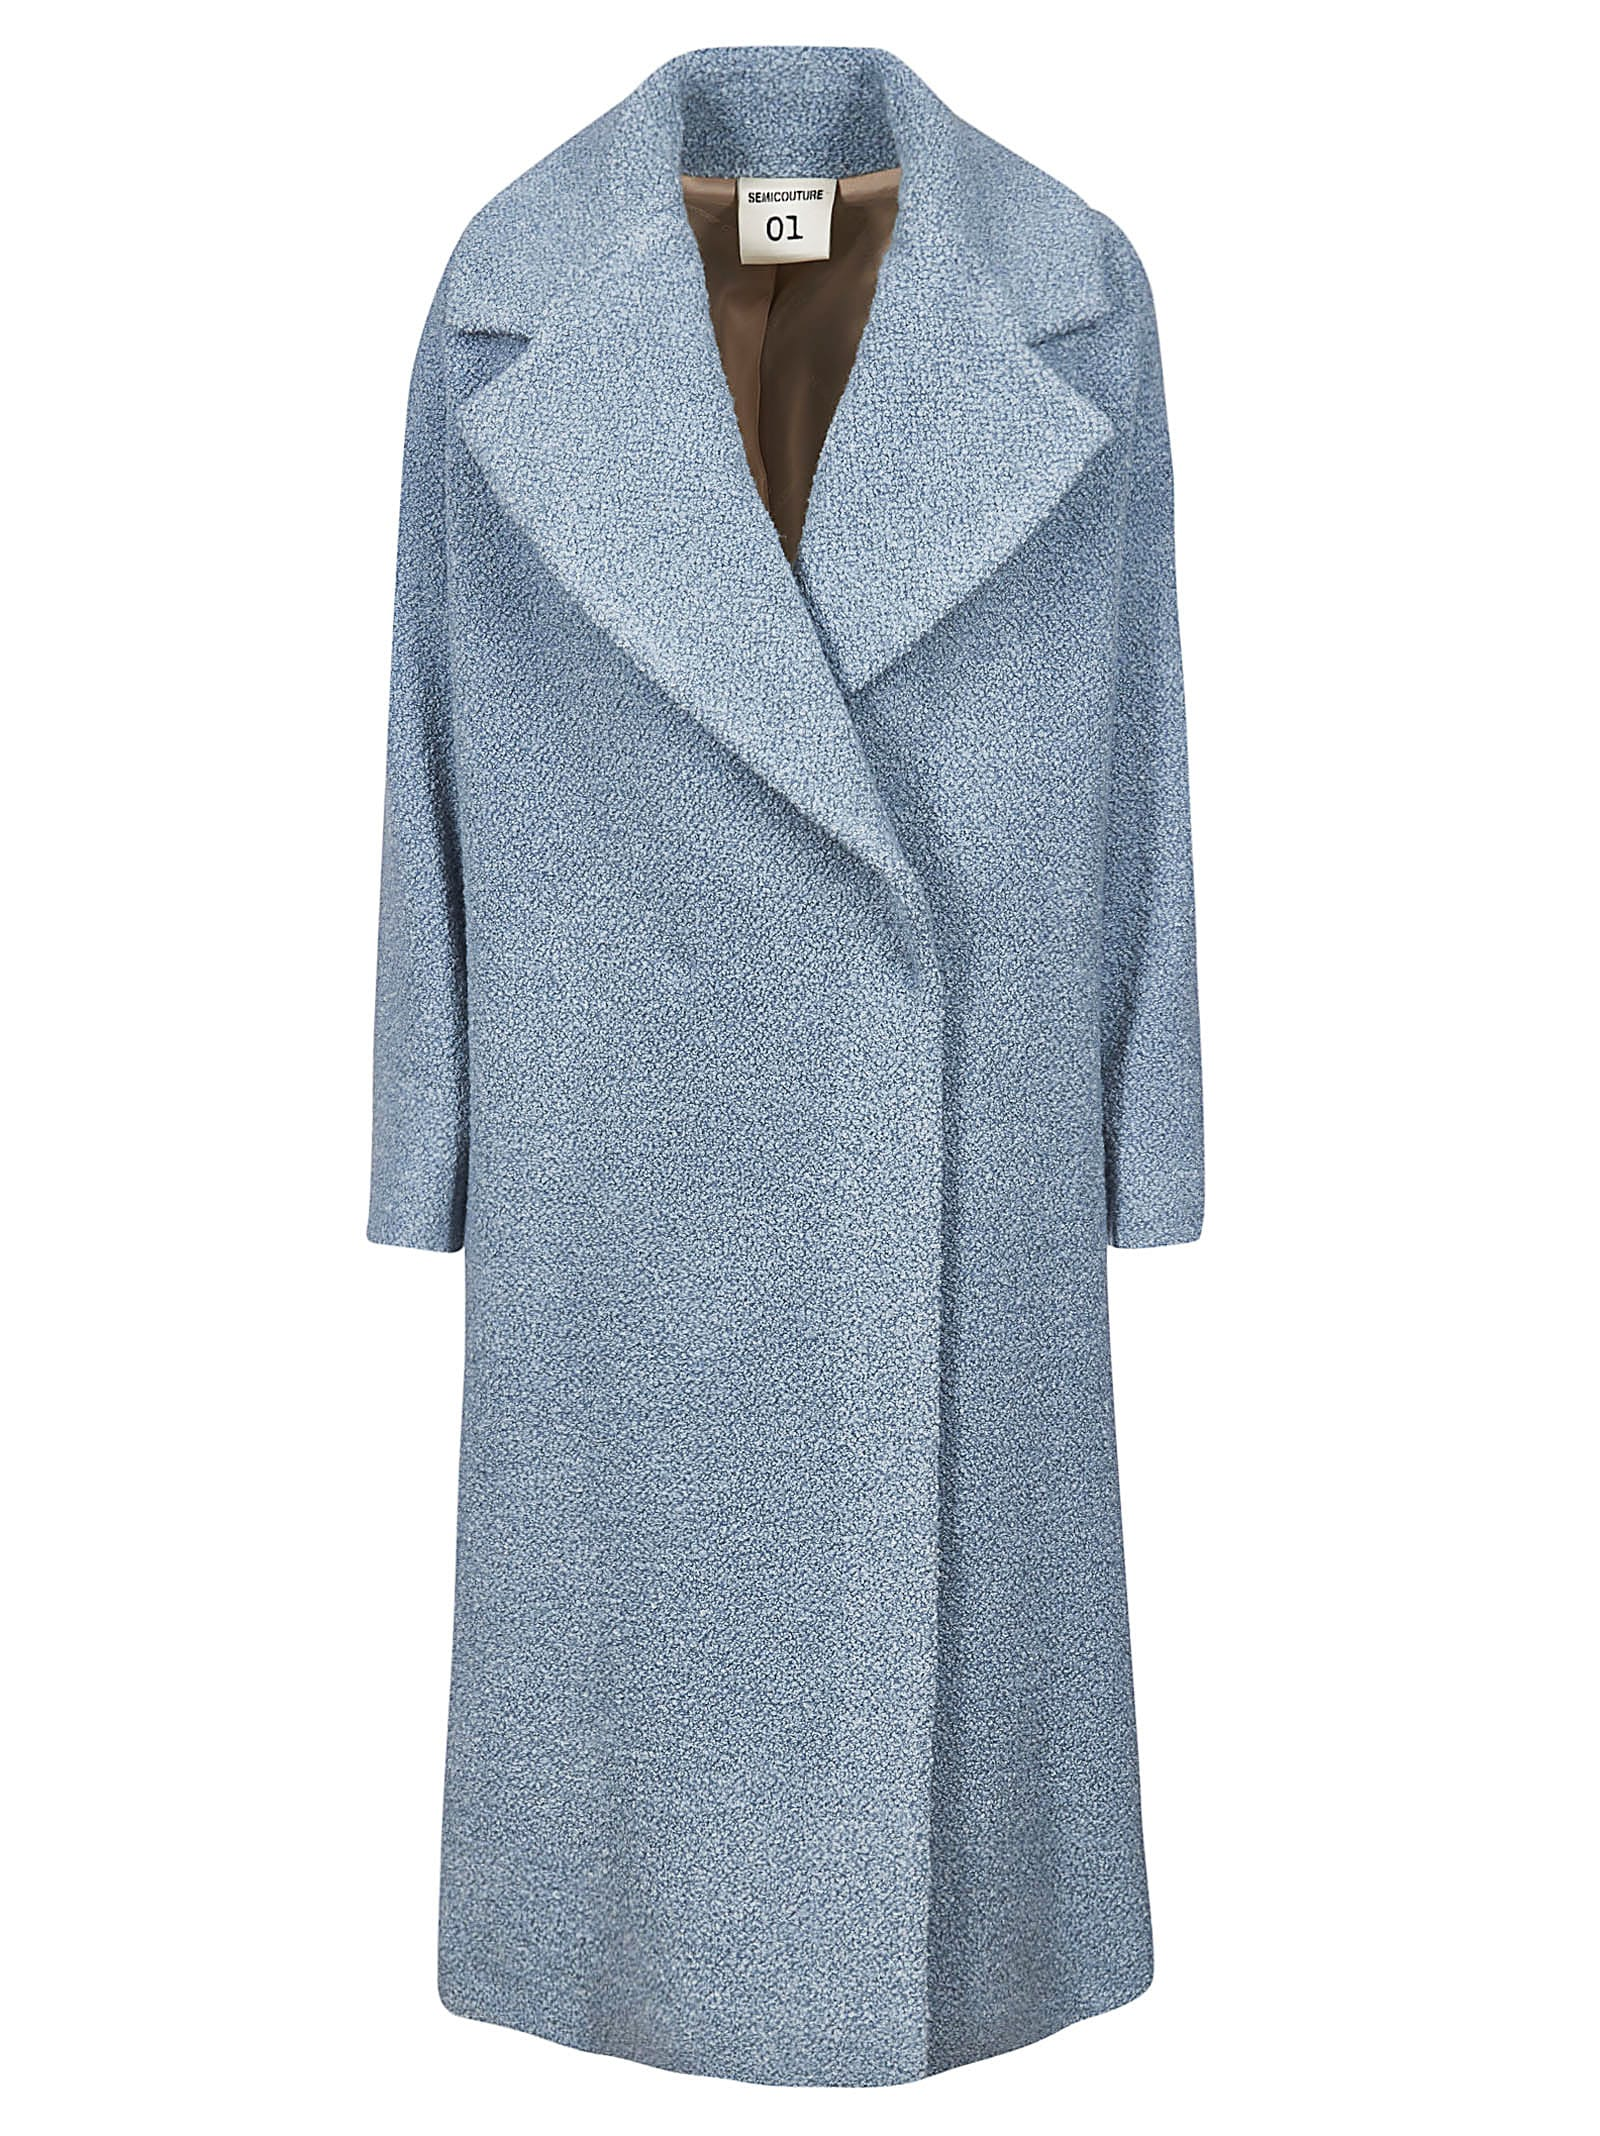 SEMICOUTURE Wide Lapel Coat